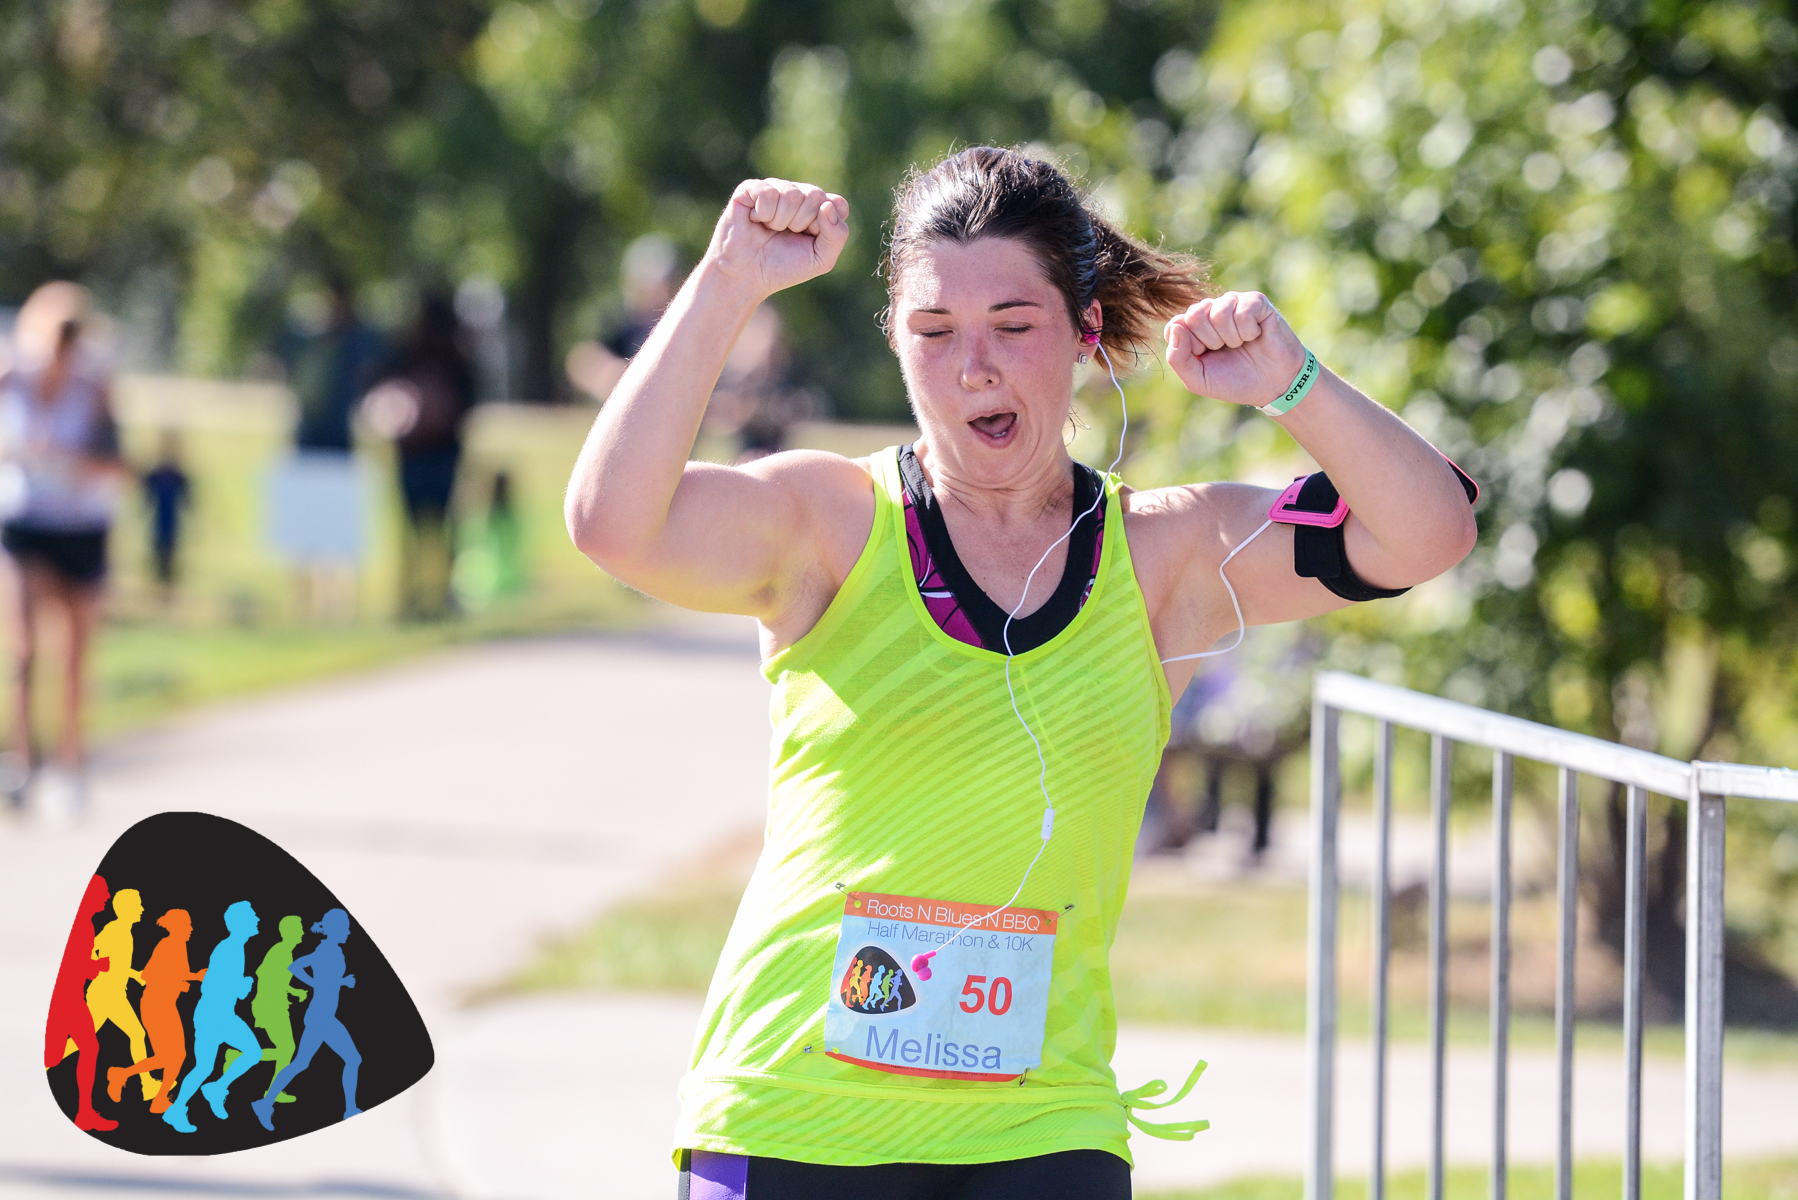 Crazy sister dancing across the finish line!